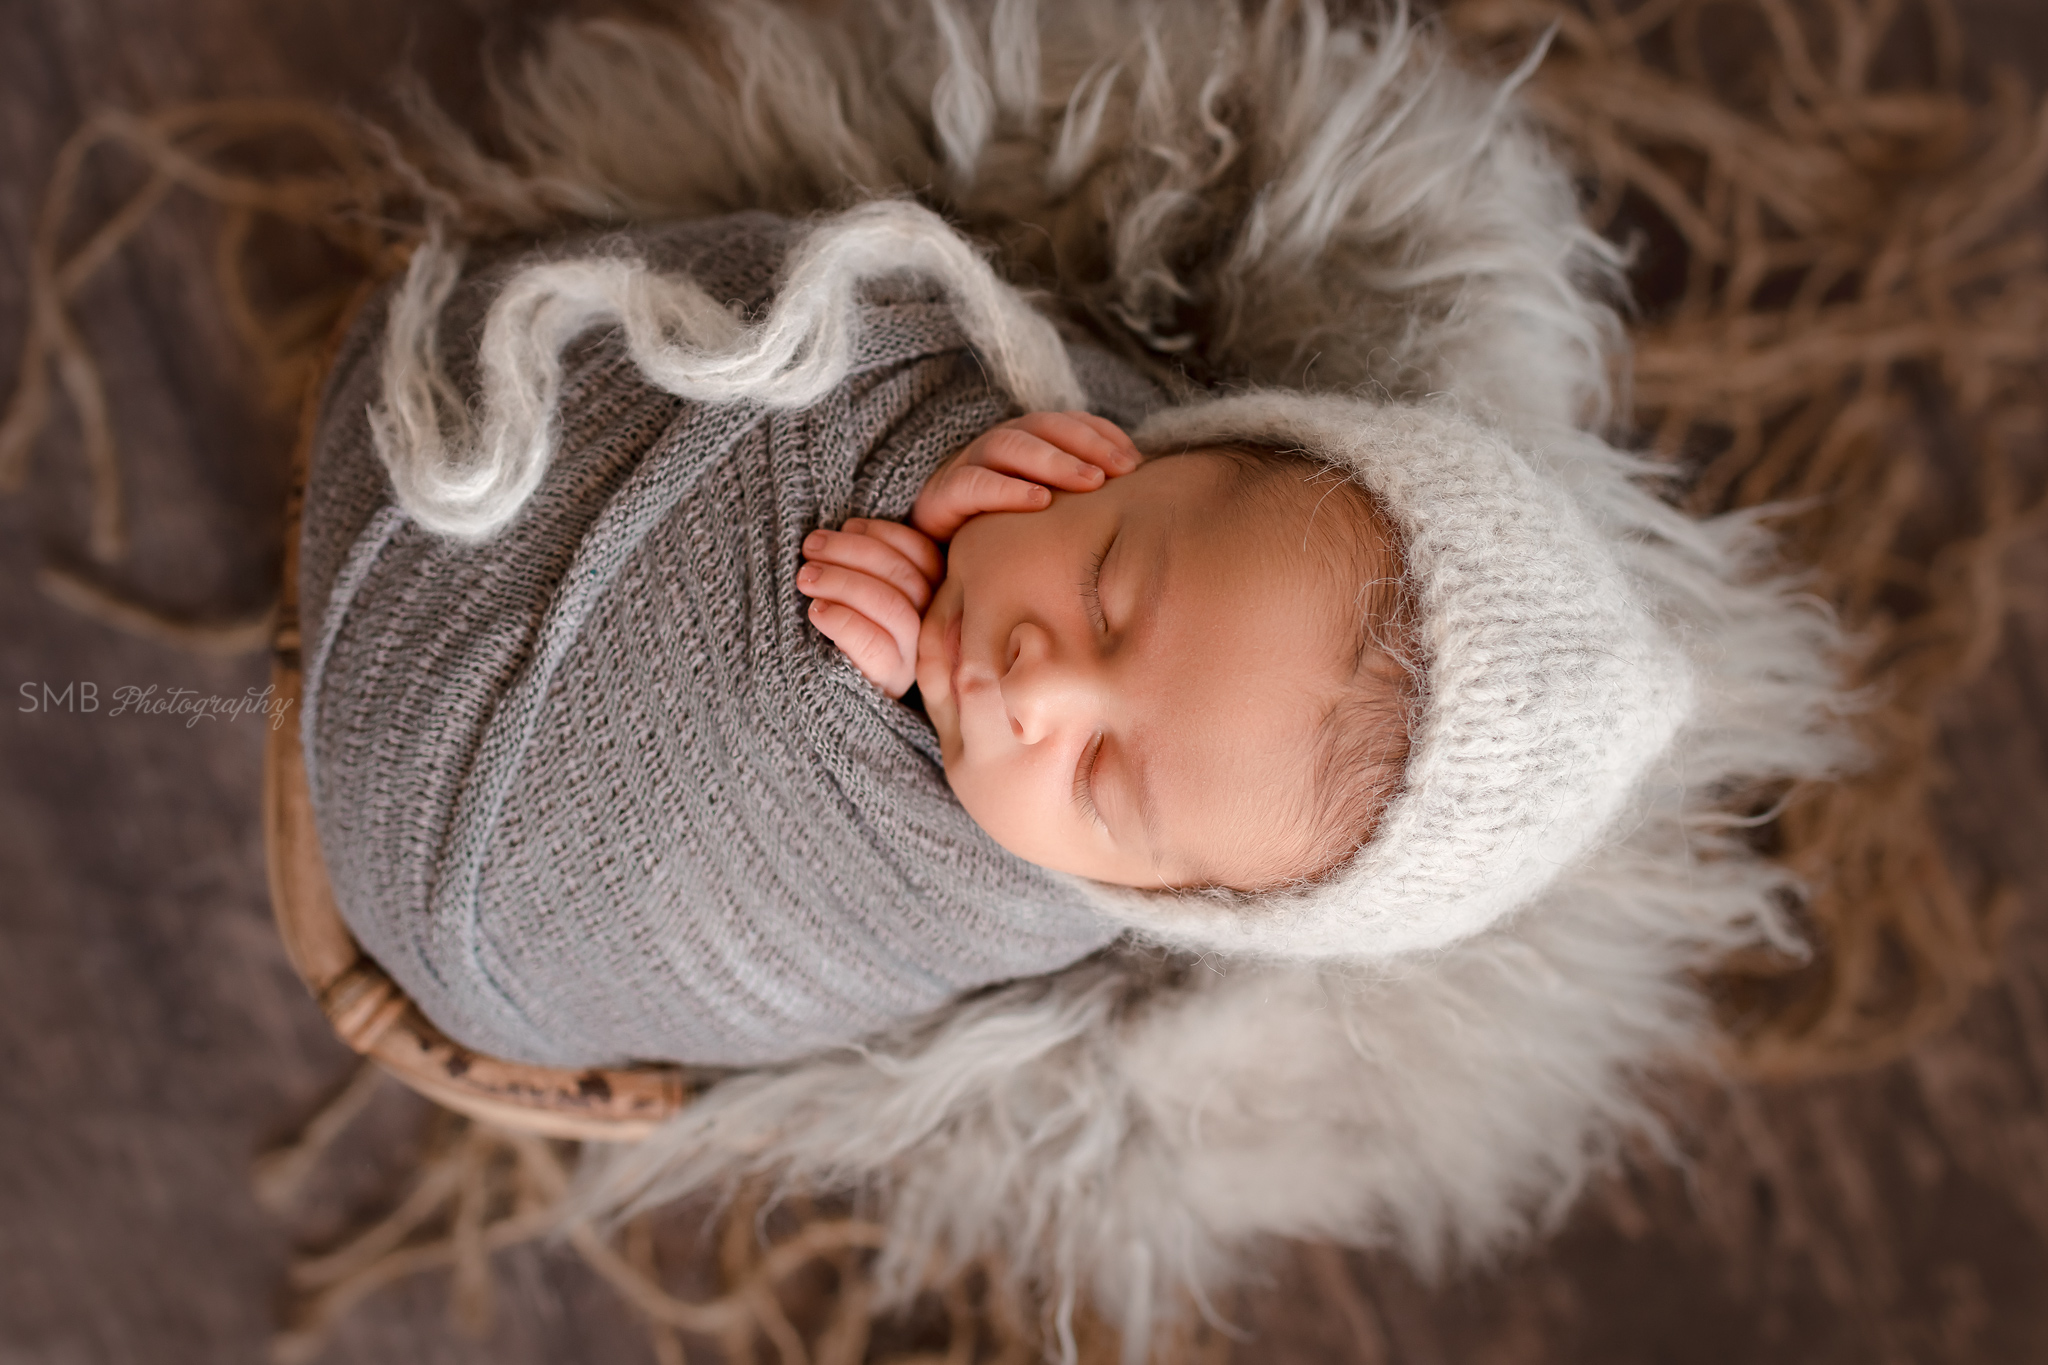 Baby boy wrapped in gray textured wrap, sleeping in bamboo basket